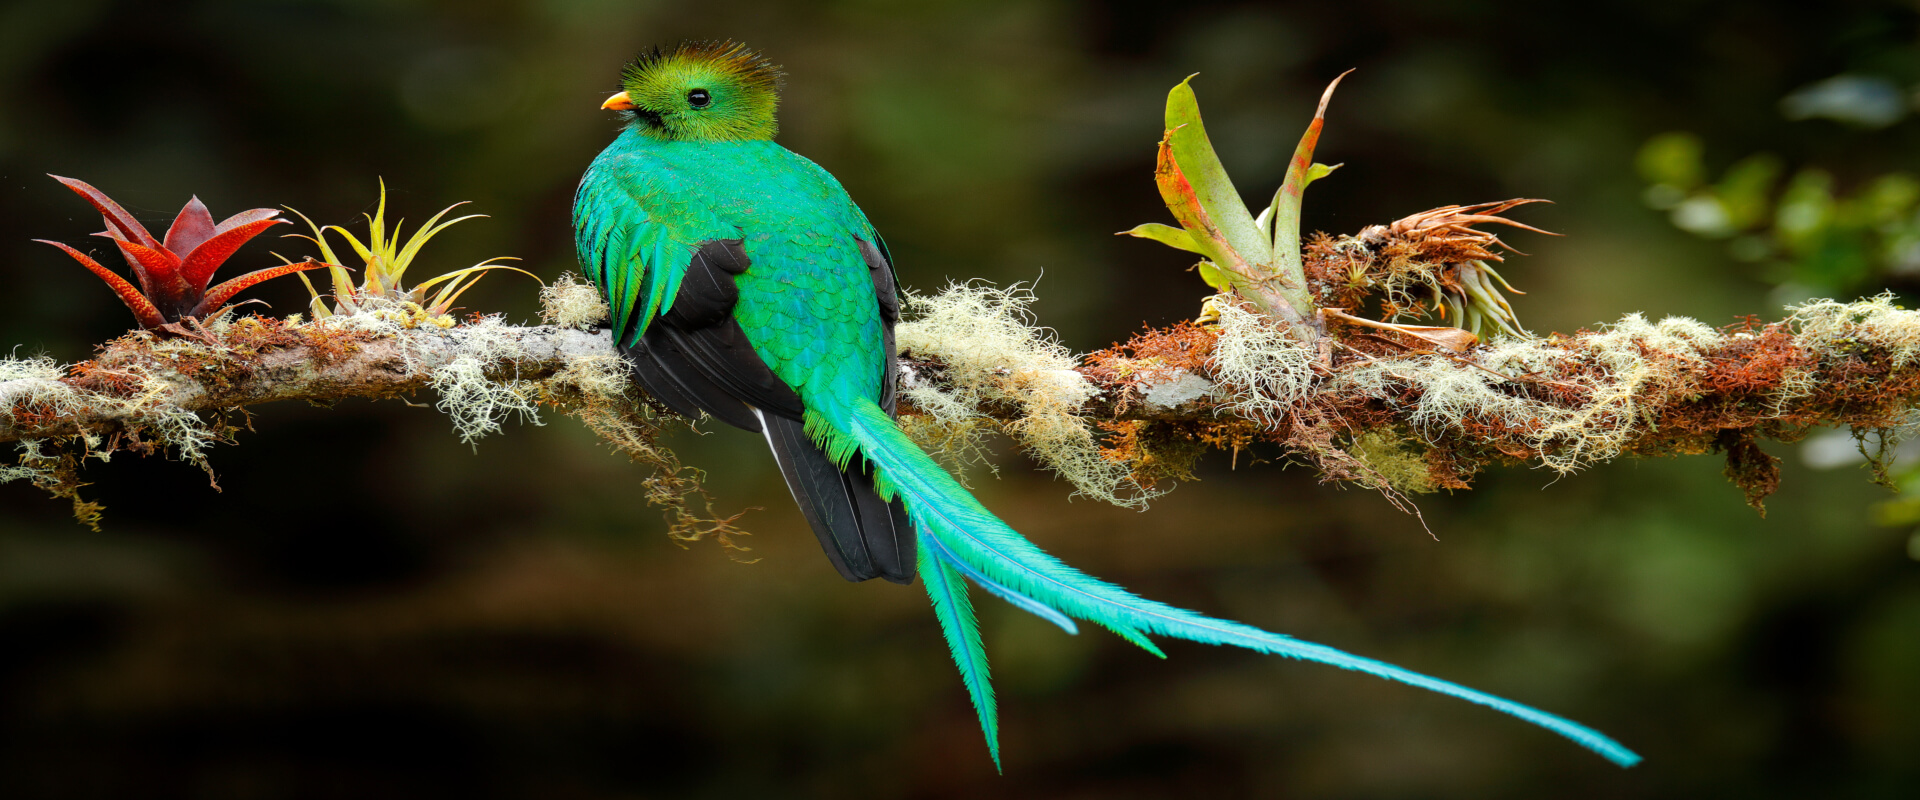 Monteverde Cloud Forest Biological Reserve Nature Tour | Costa Rica Jade Tours